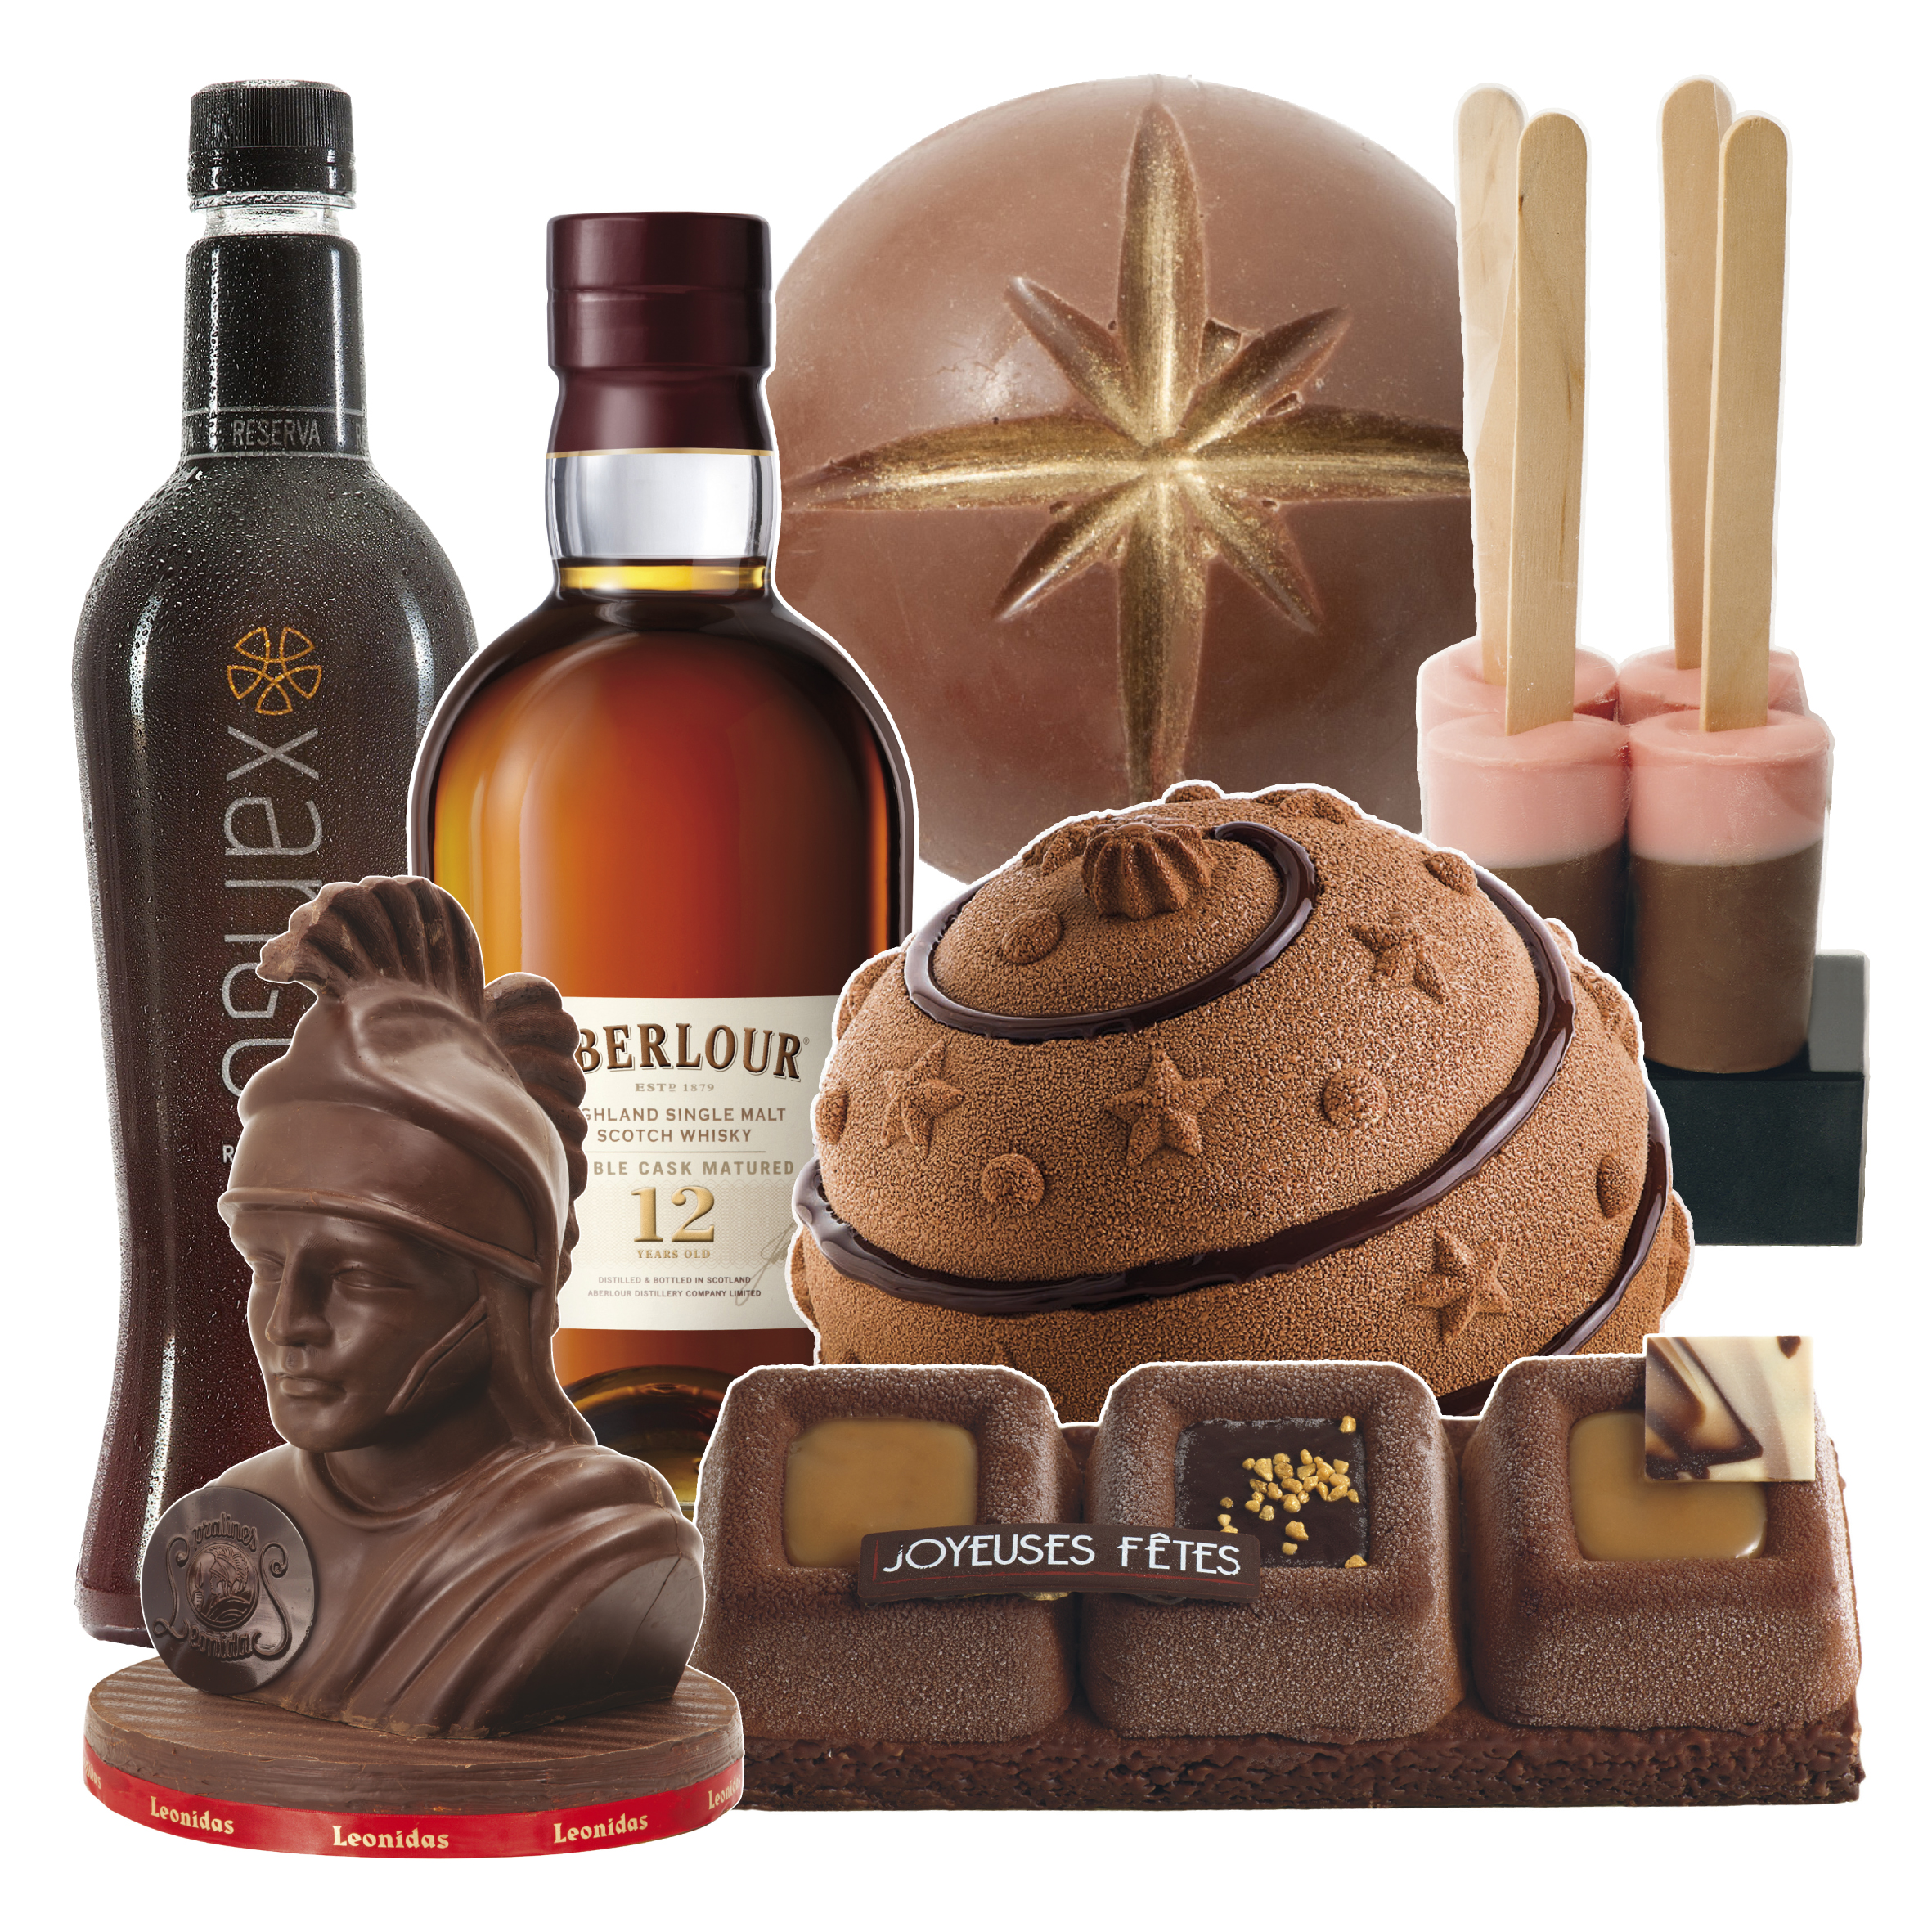 deco_arts_table_gastronomie_gourmande_chocolat-2